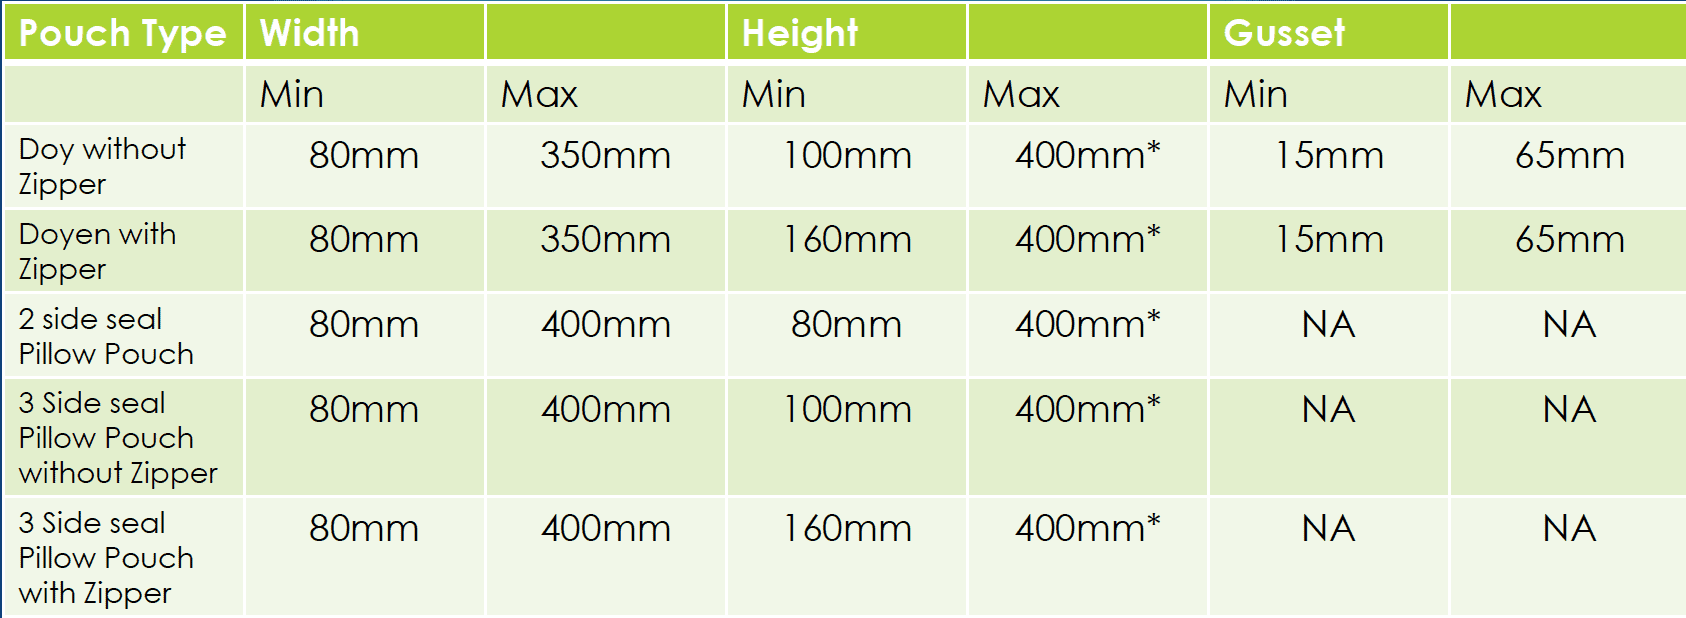 Standard Printed Pouch Sizes